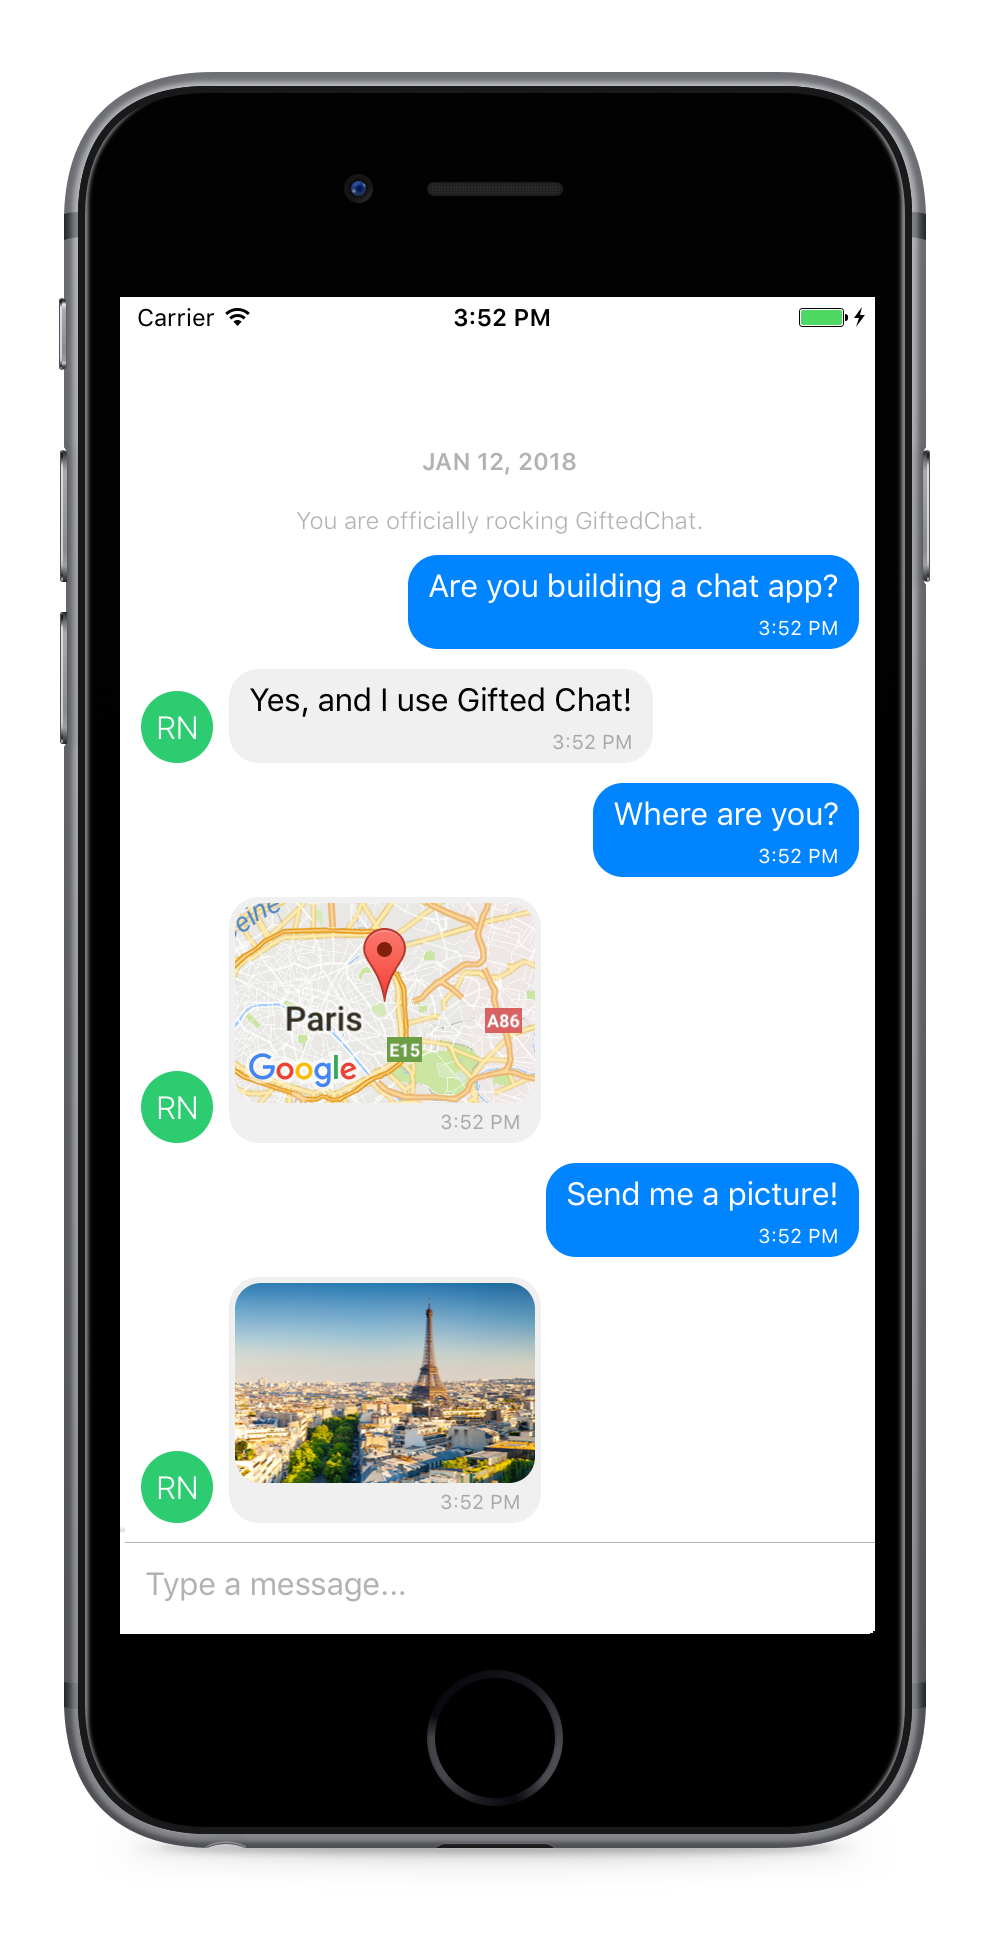 react-native-gifted-chat-1